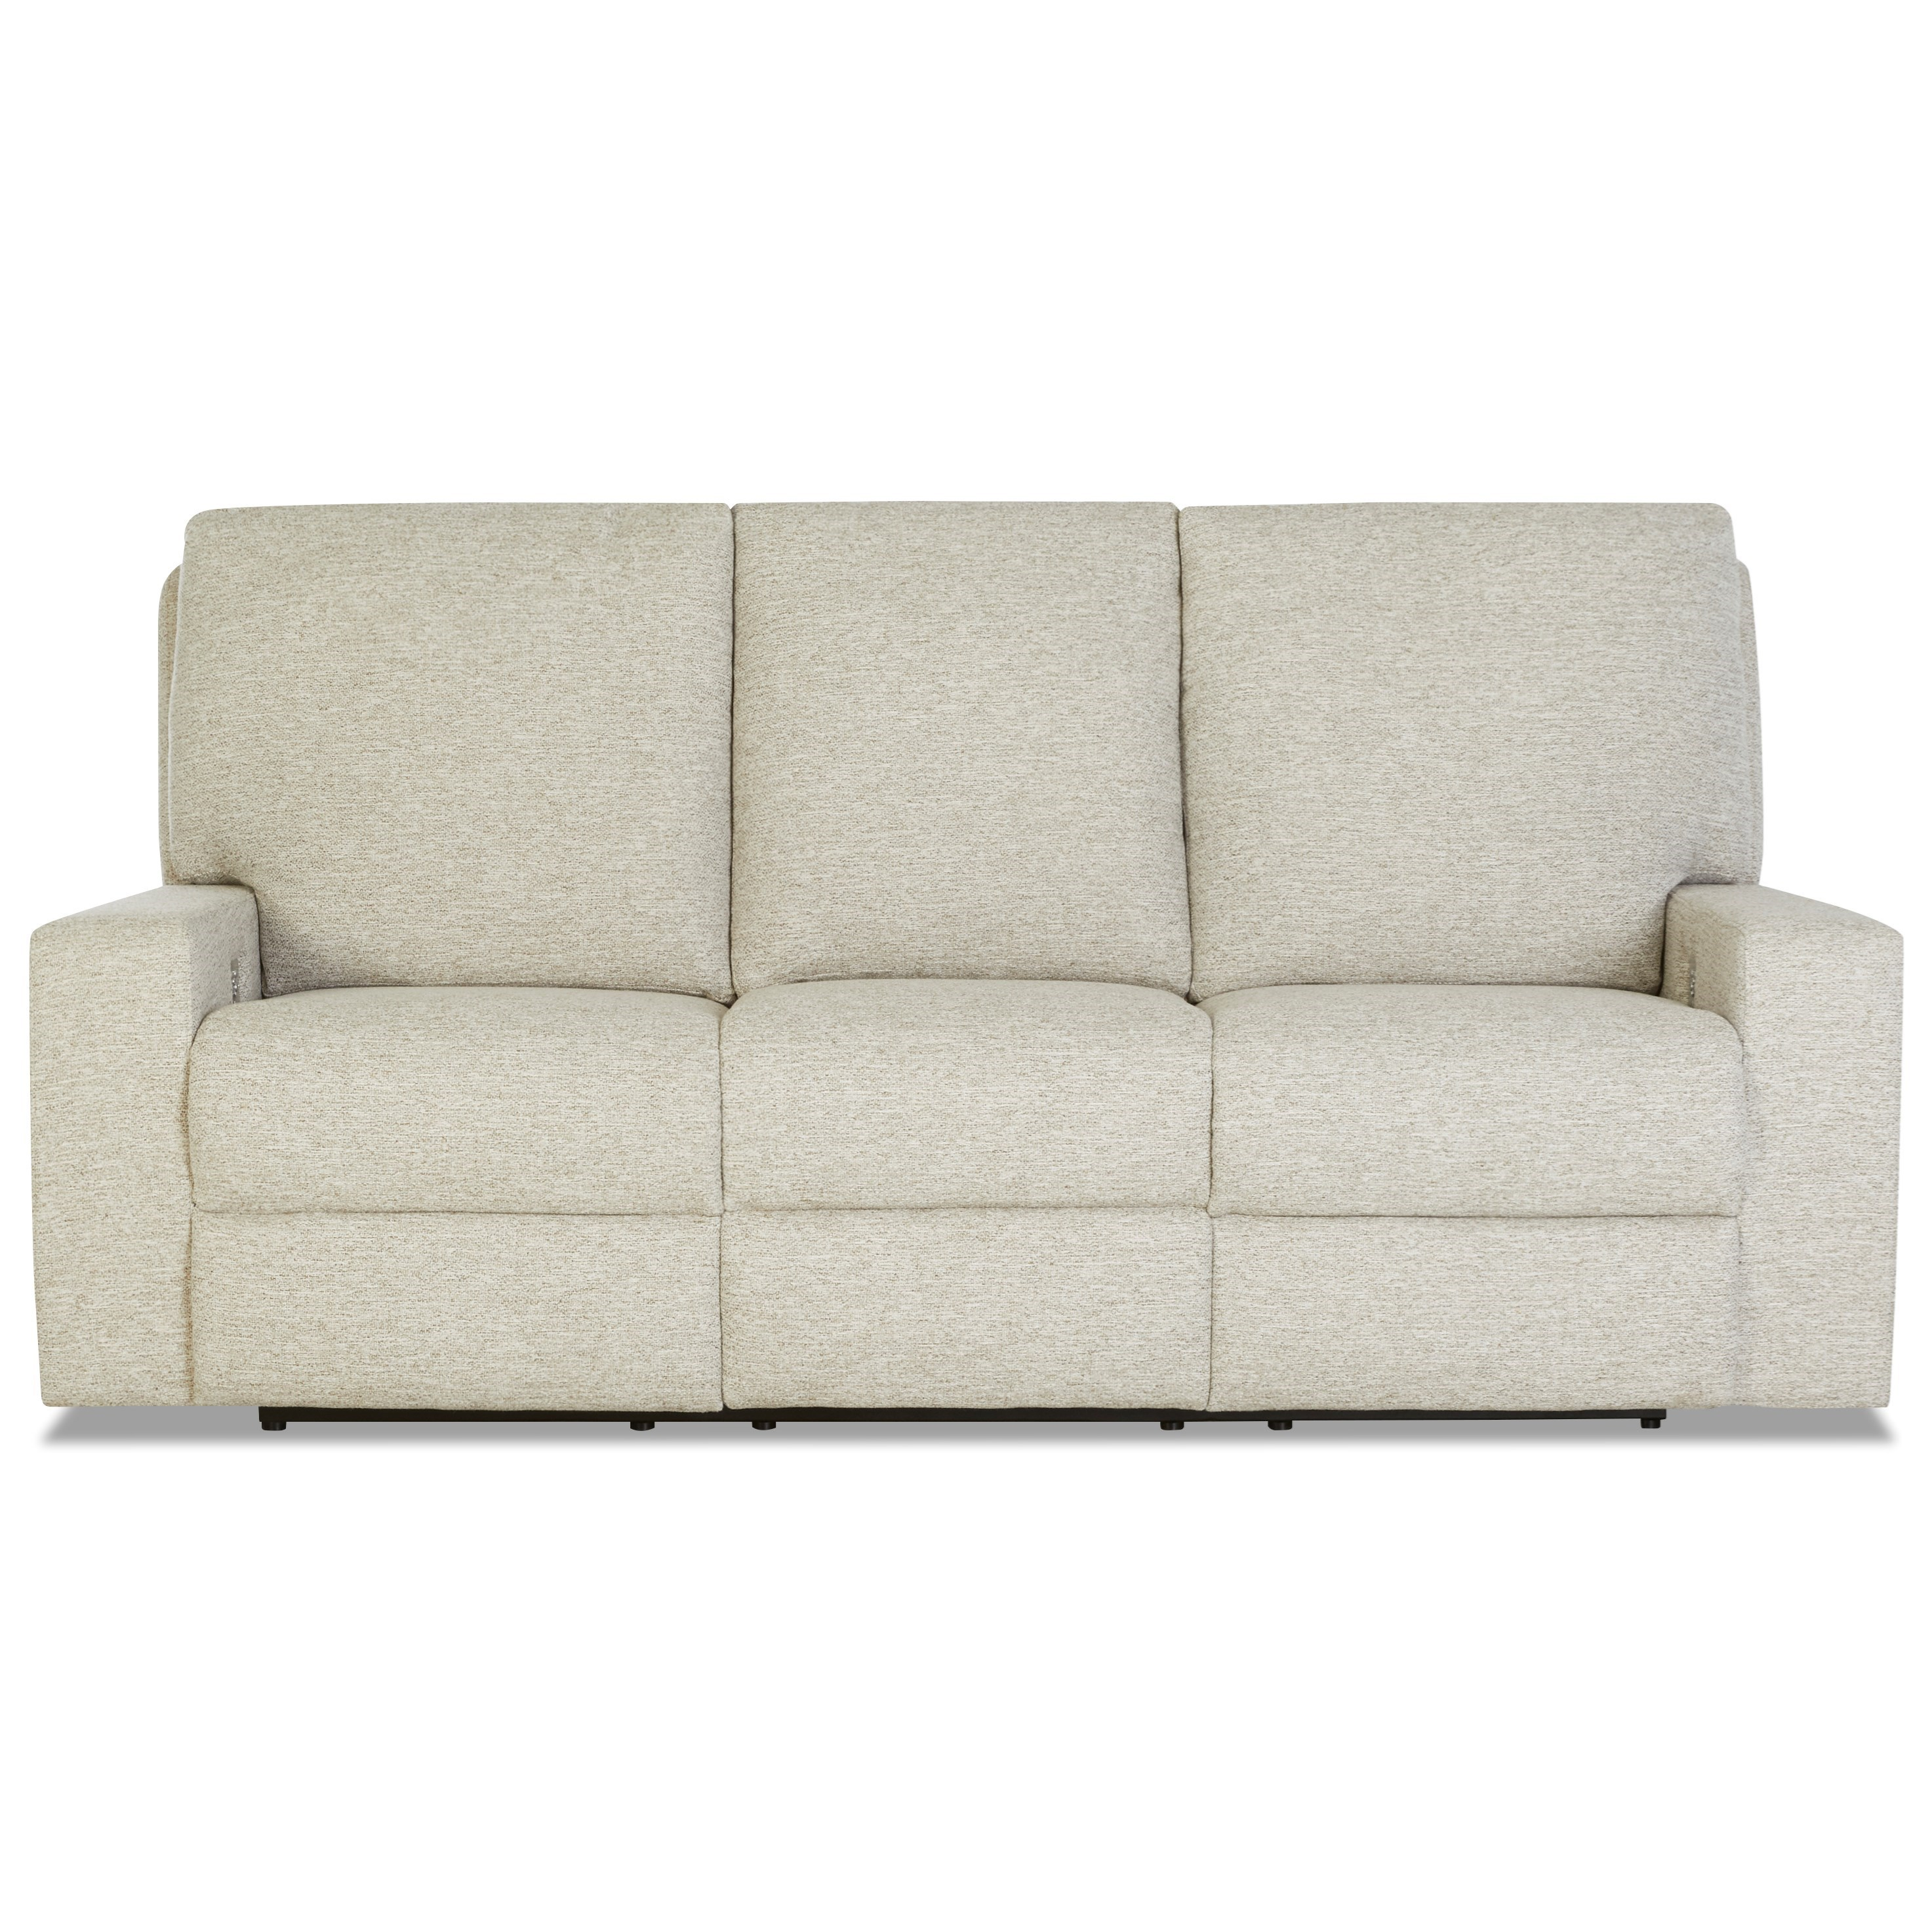 Alliser Power Reclining Sofa w/ Pwr Headrests & XMS by Klaussner at Lapeer Furniture & Mattress Center